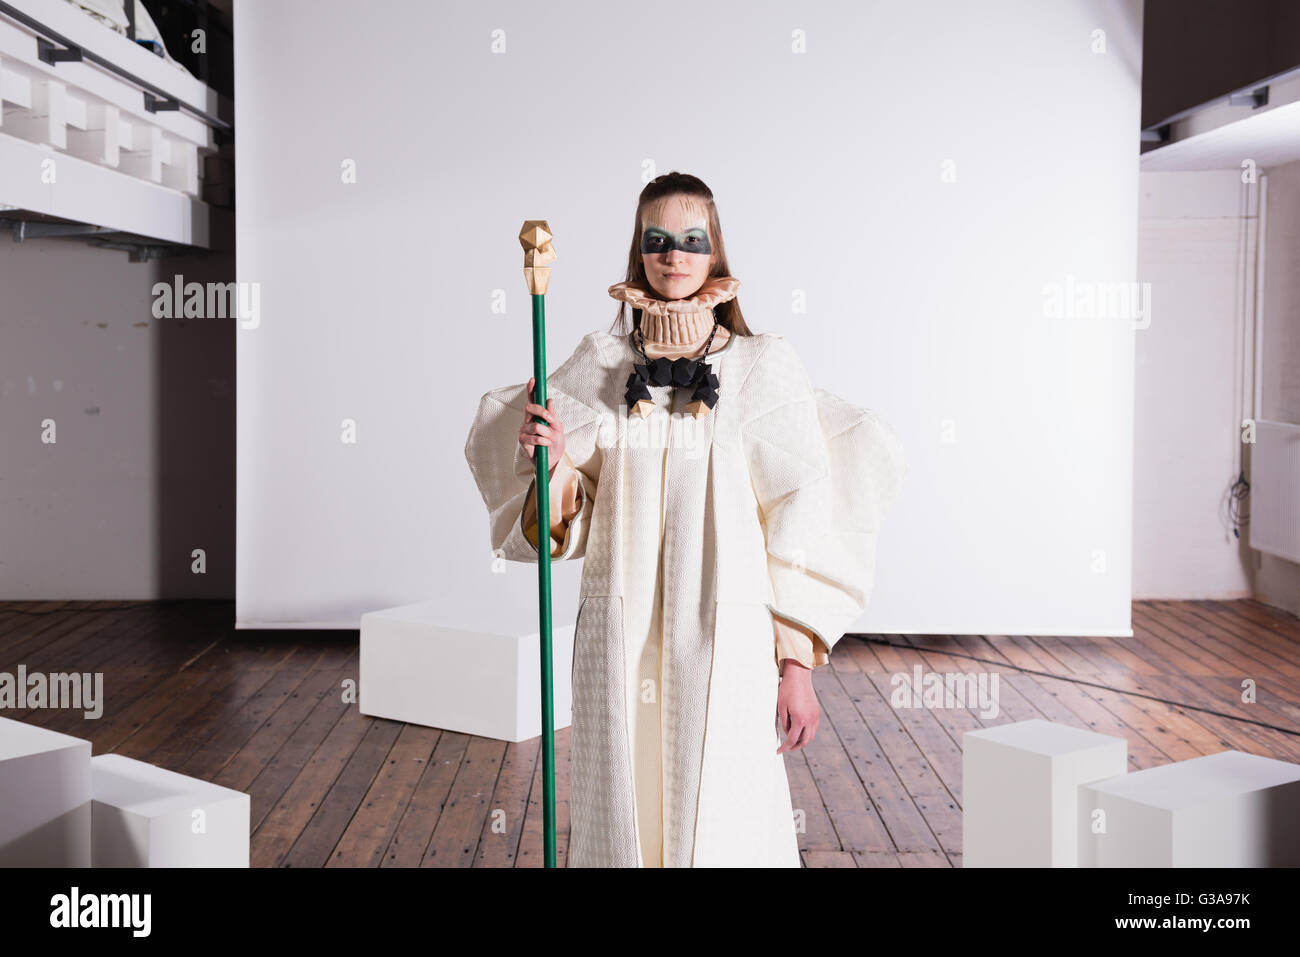 Extravagant fashion show model looking into camera - Stock Image